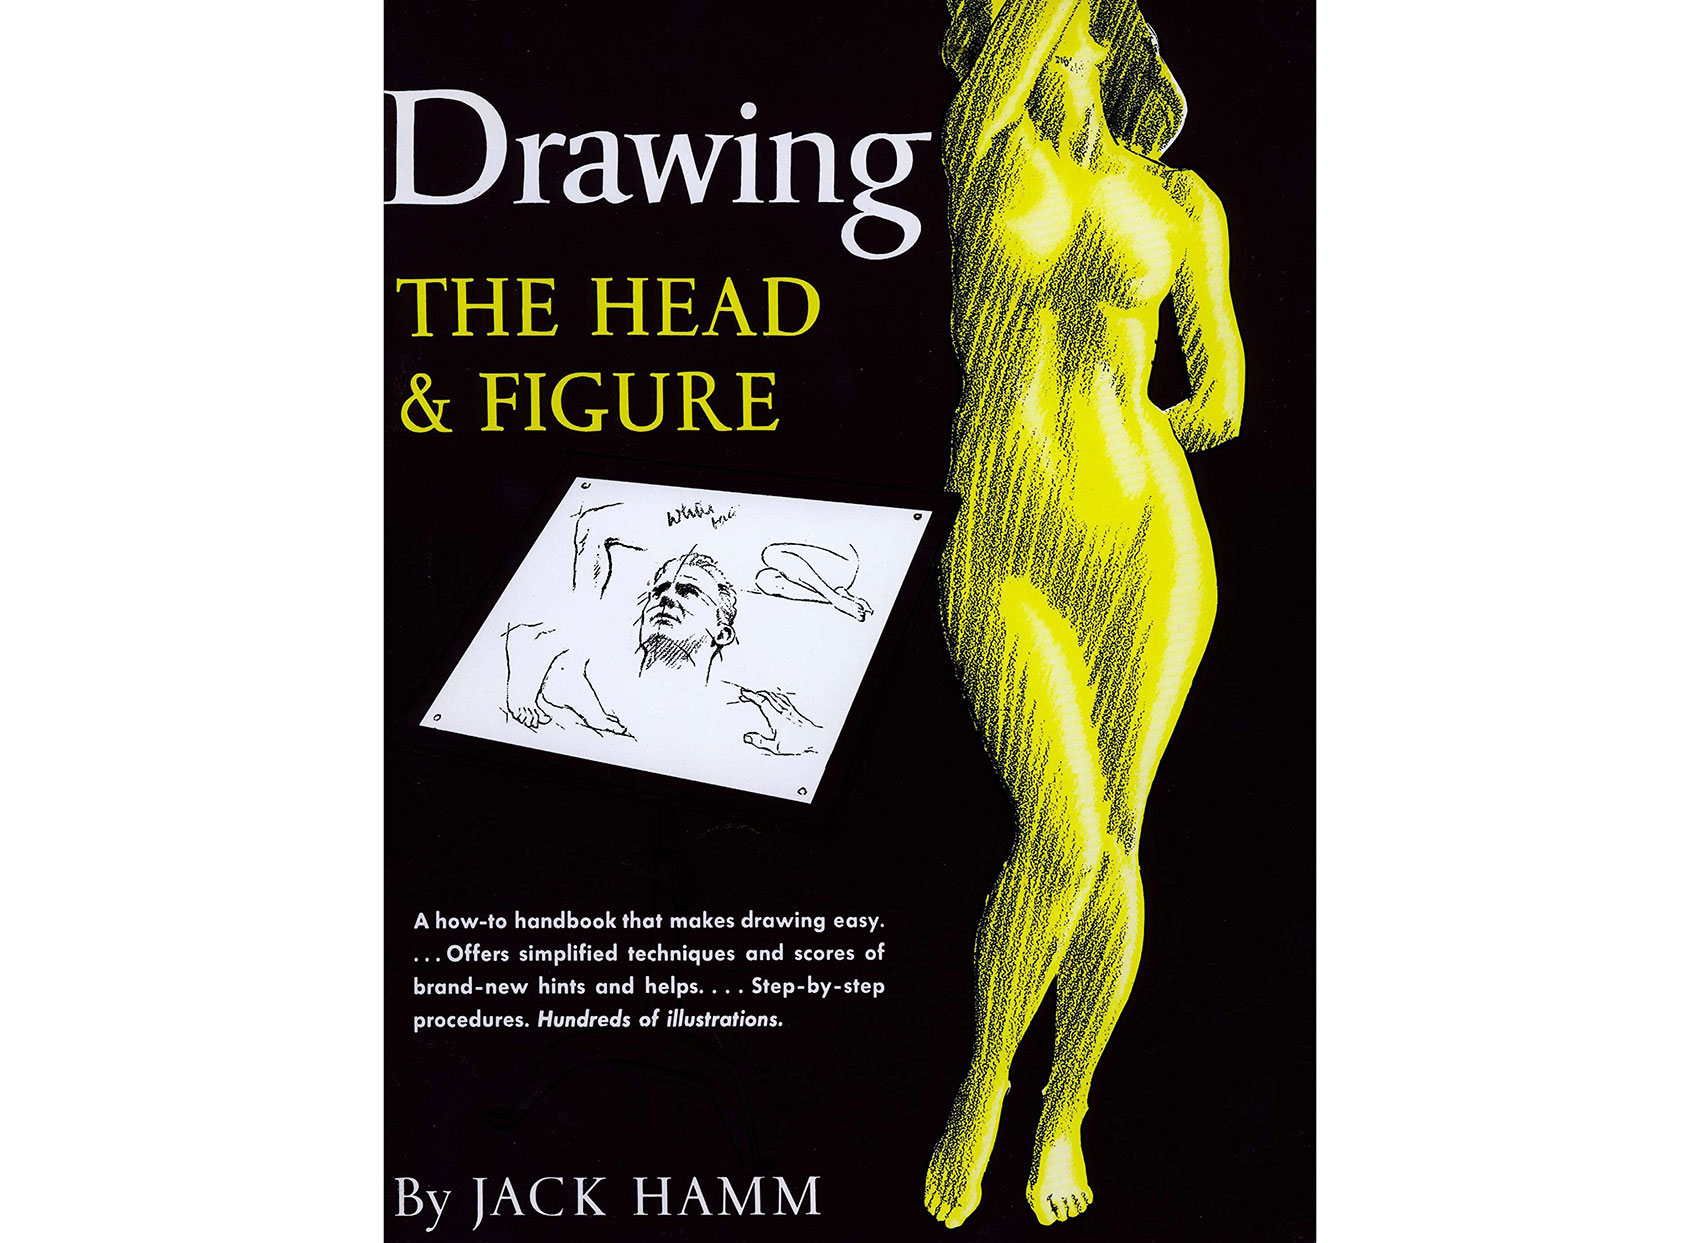 Best drawing books: Drawing the head and figure